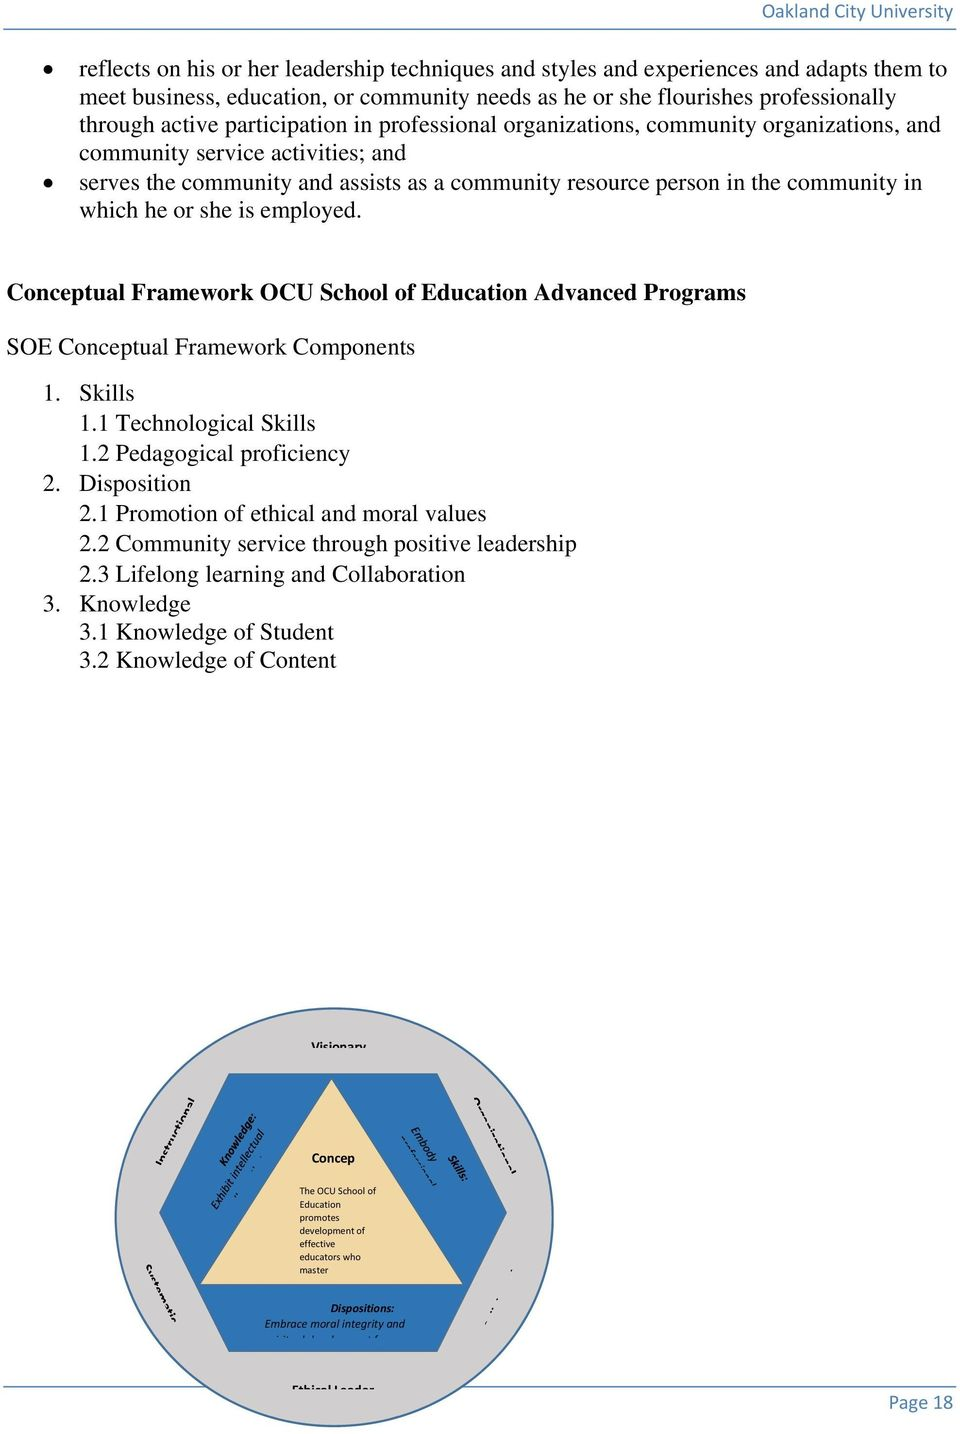 he or she is employed. Conceptual Framework OCU School of Education Advanced Programs SOE Conceptual Framework Components 1. Skills 1.1 Technological Skills 1.2 Pedagogical proficiency 2.